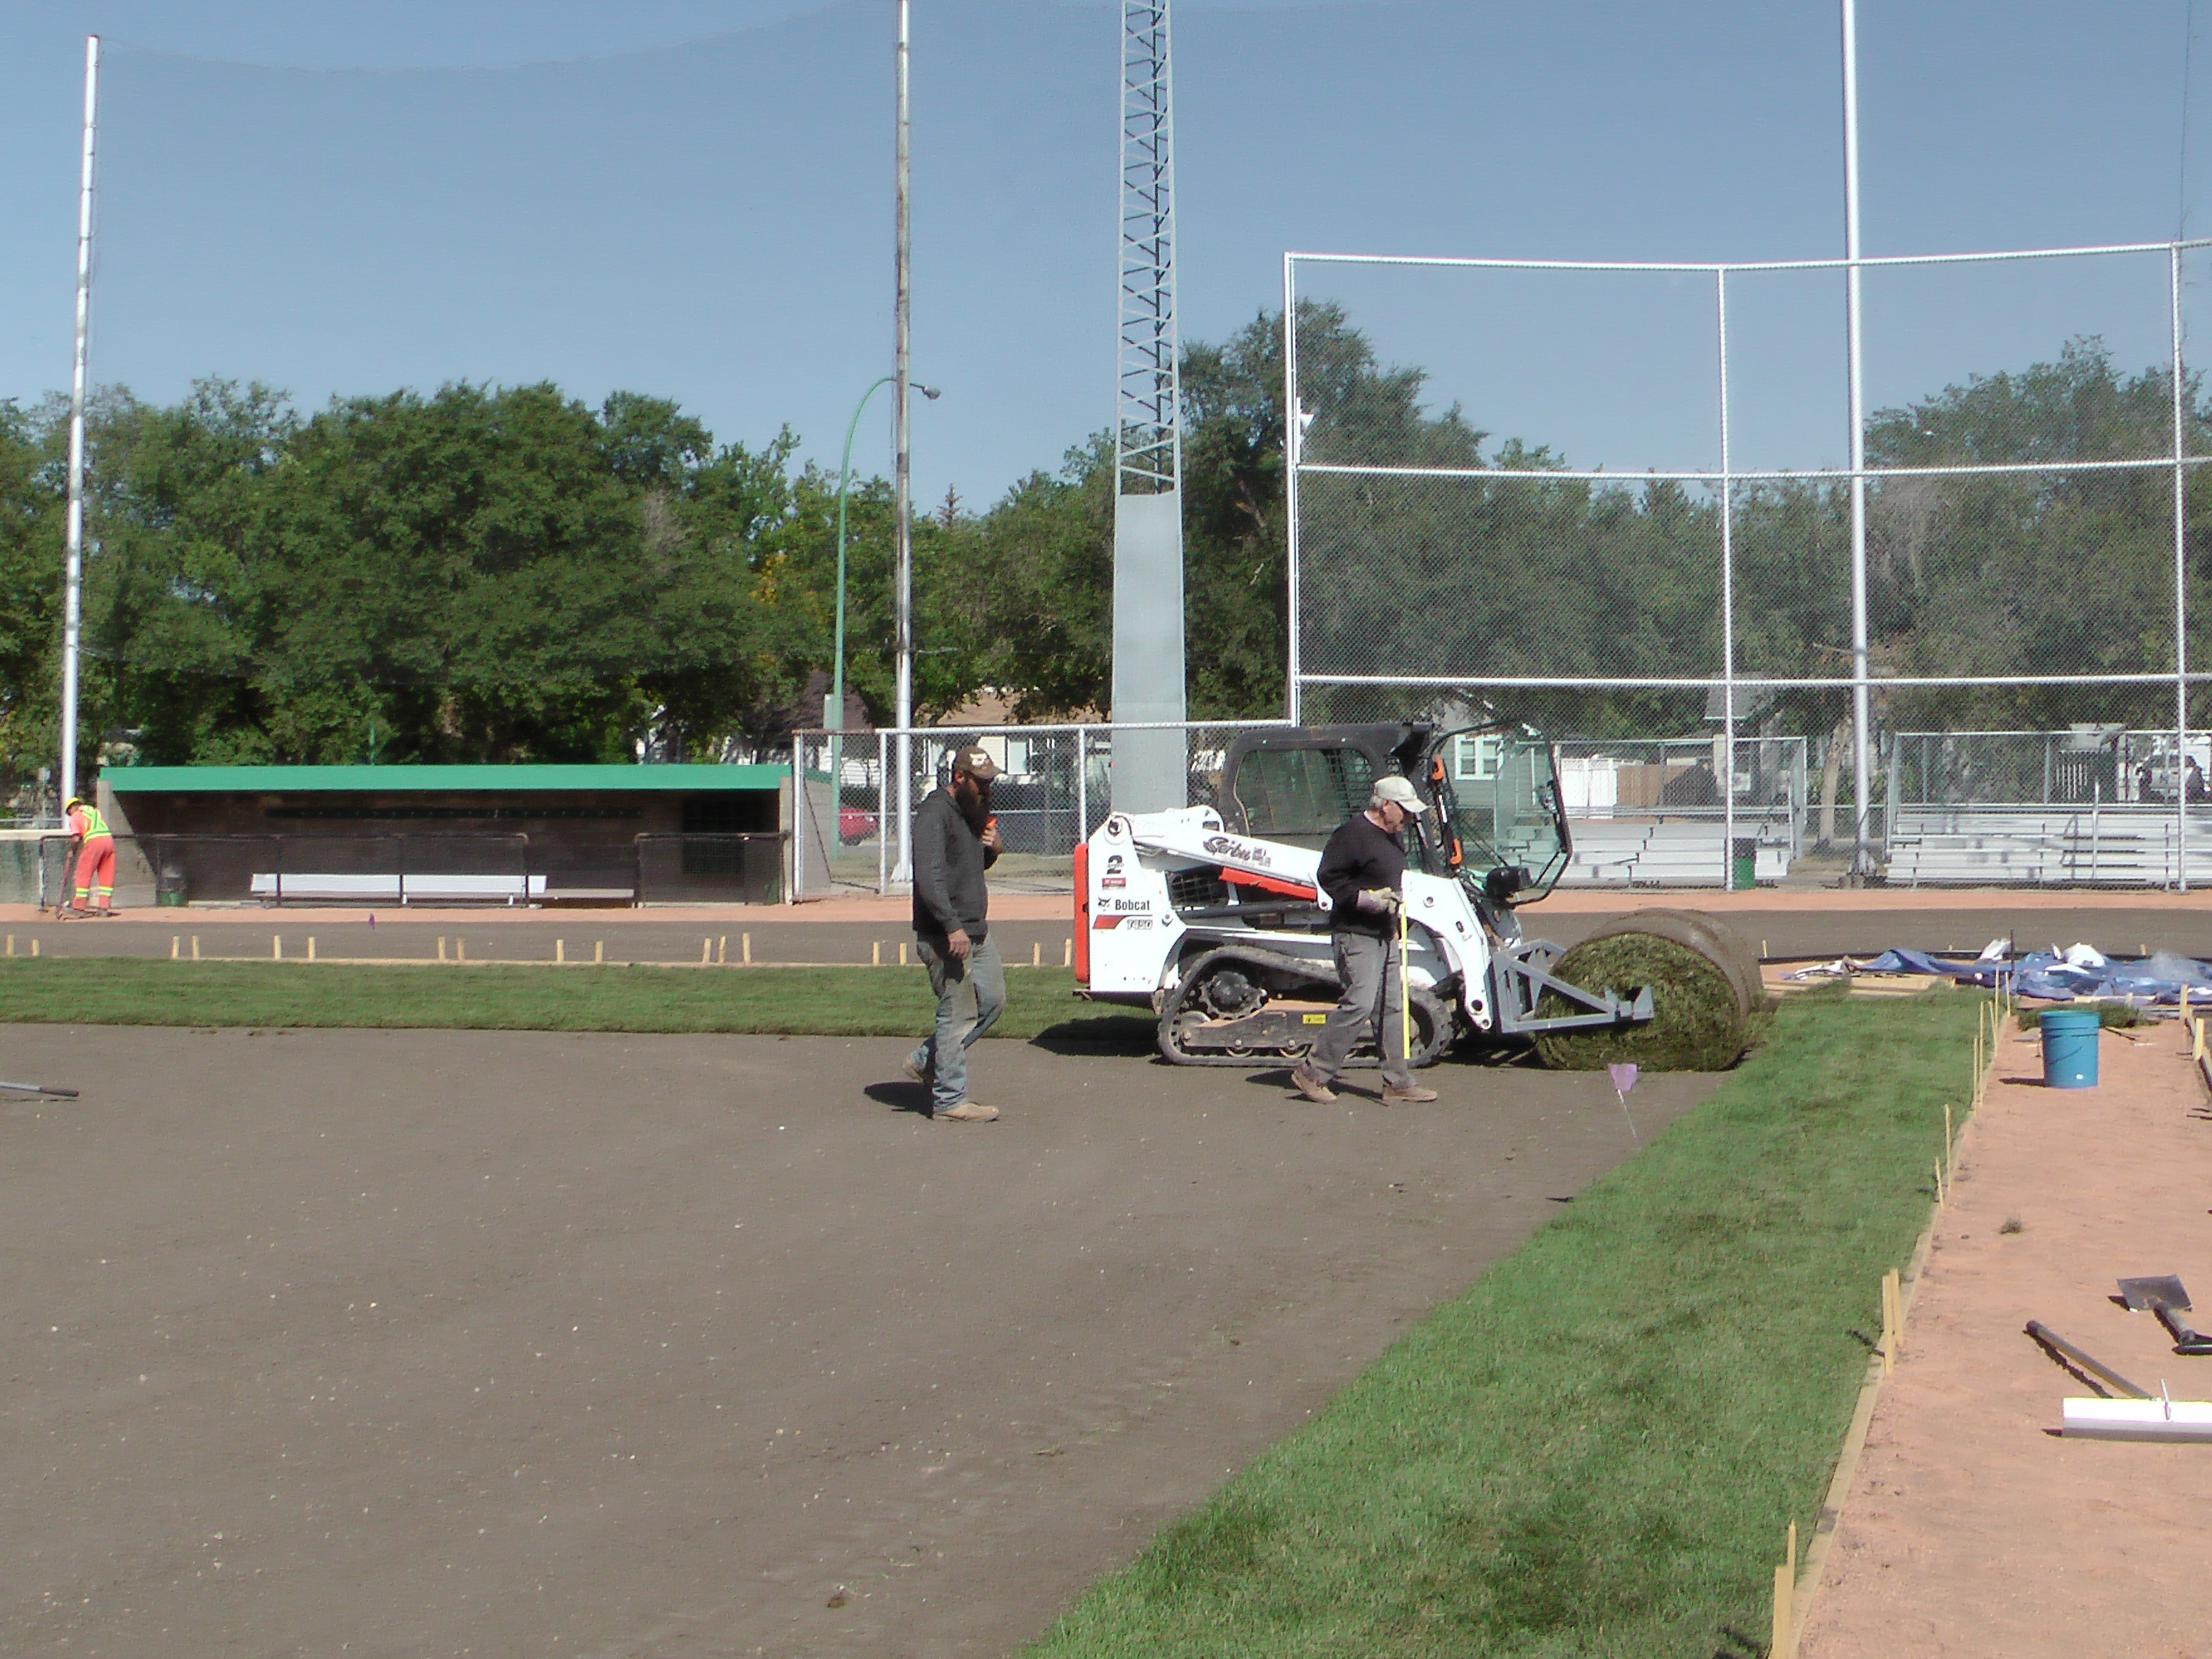 Sept 5 2018 Optimist Park Field Renovations, Placing New Sod/Leveling! - Image 7